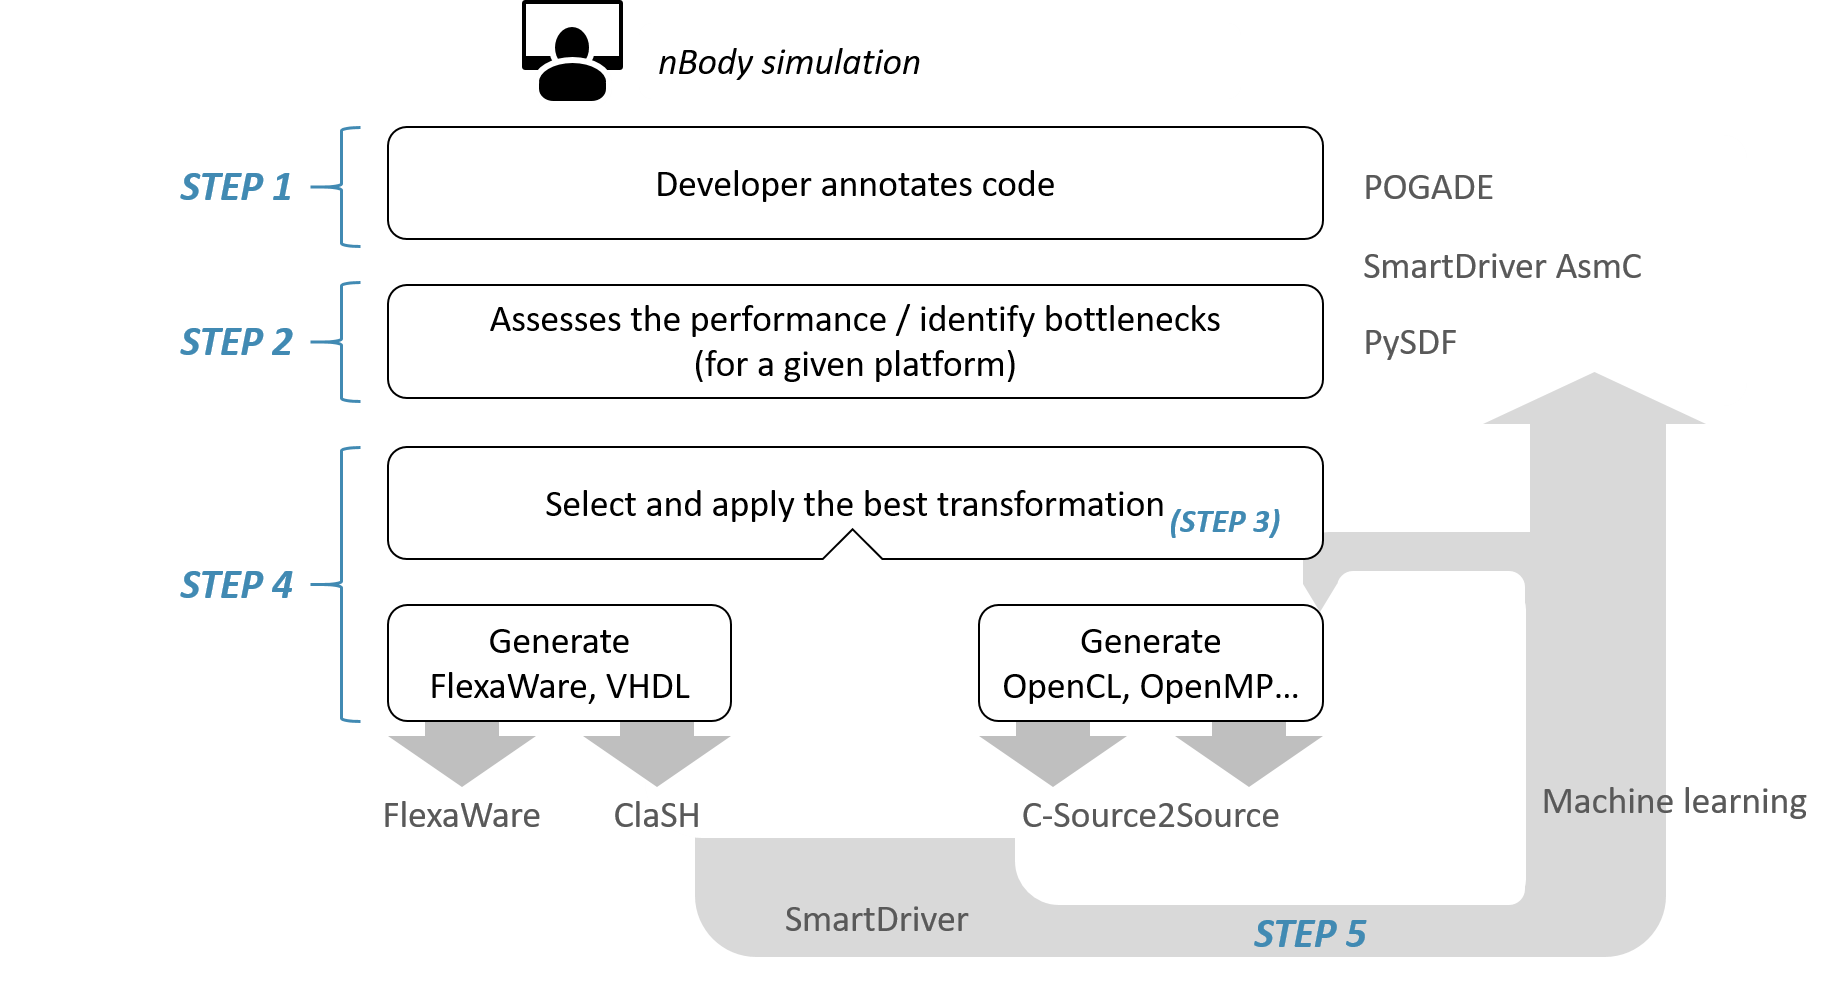 Lifecycle of the demo